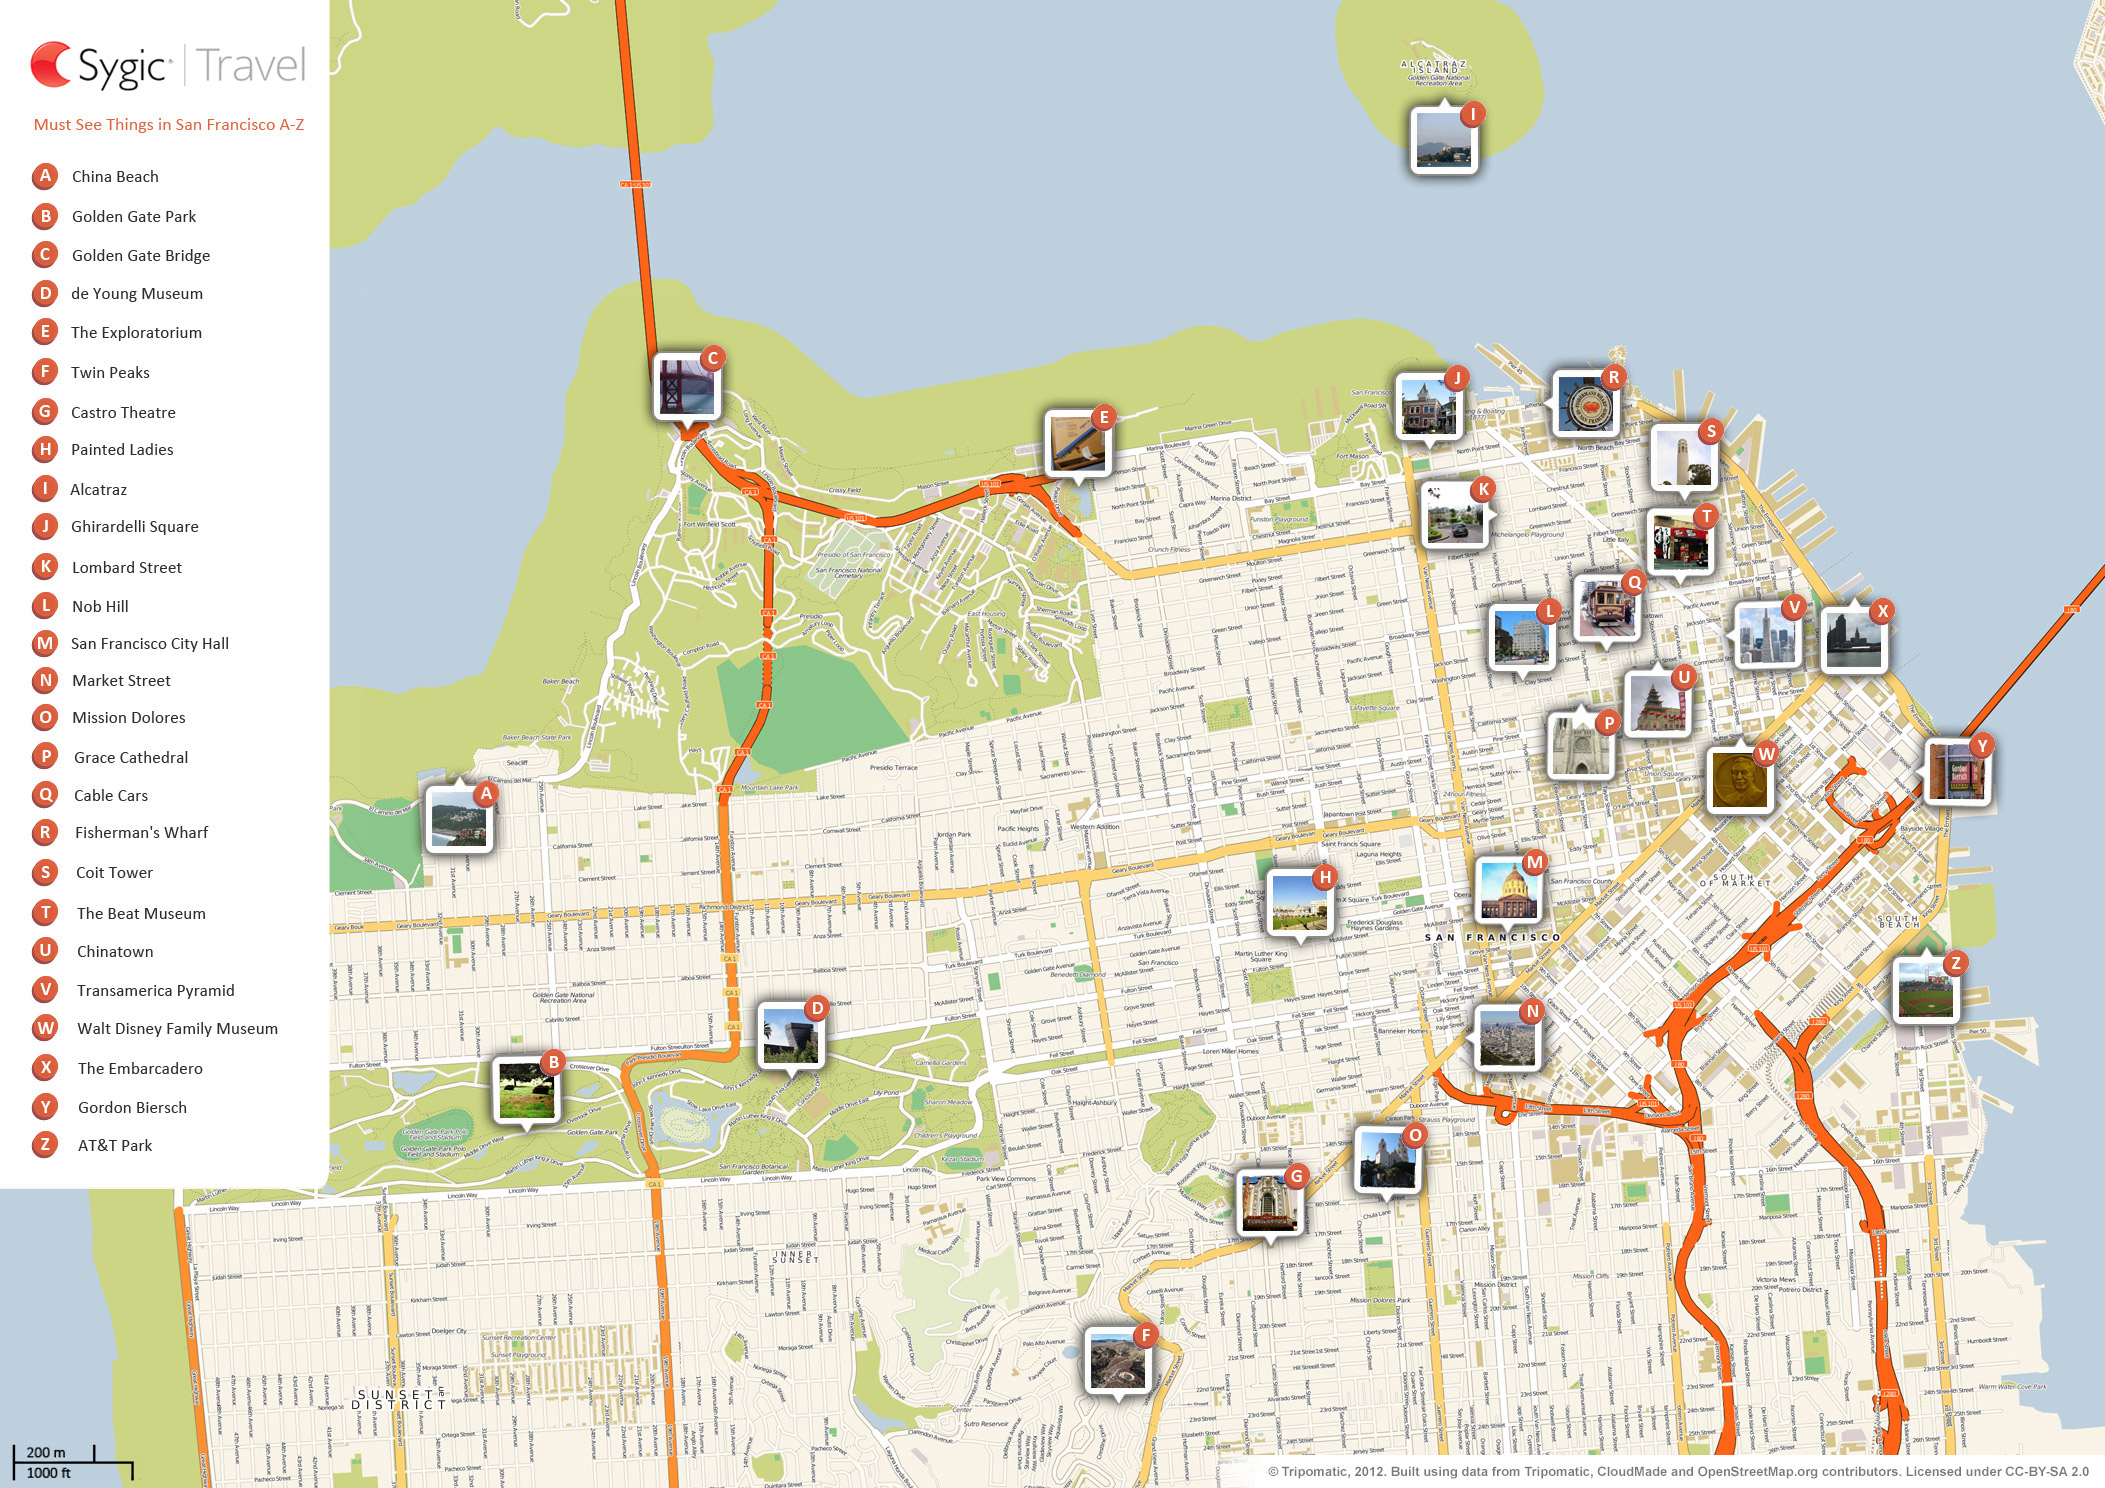 San Francisco Printable Tourist Map | Sygic Travel - San Francisco City Map Printable